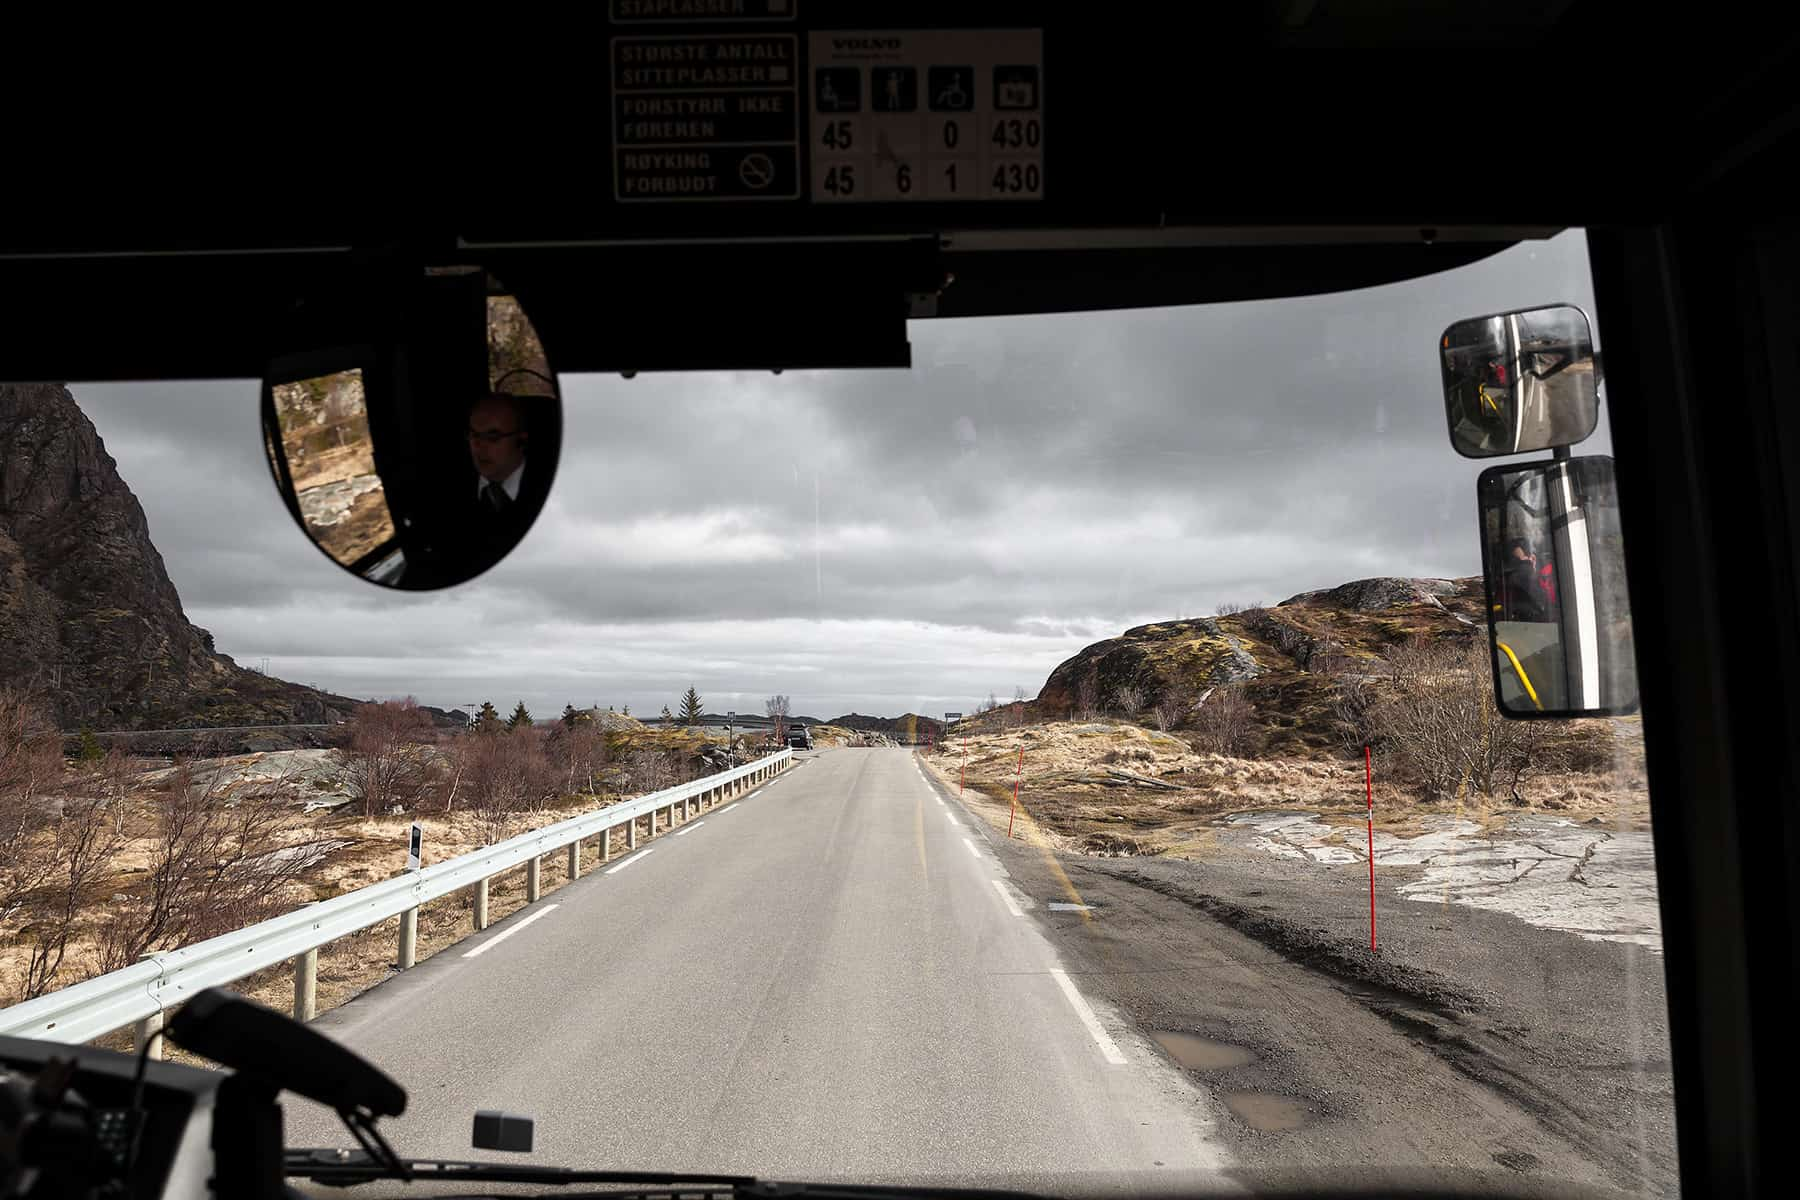 The bus ride to Henningsvær is quite enjoyable because of the views over the beautiful landscape.